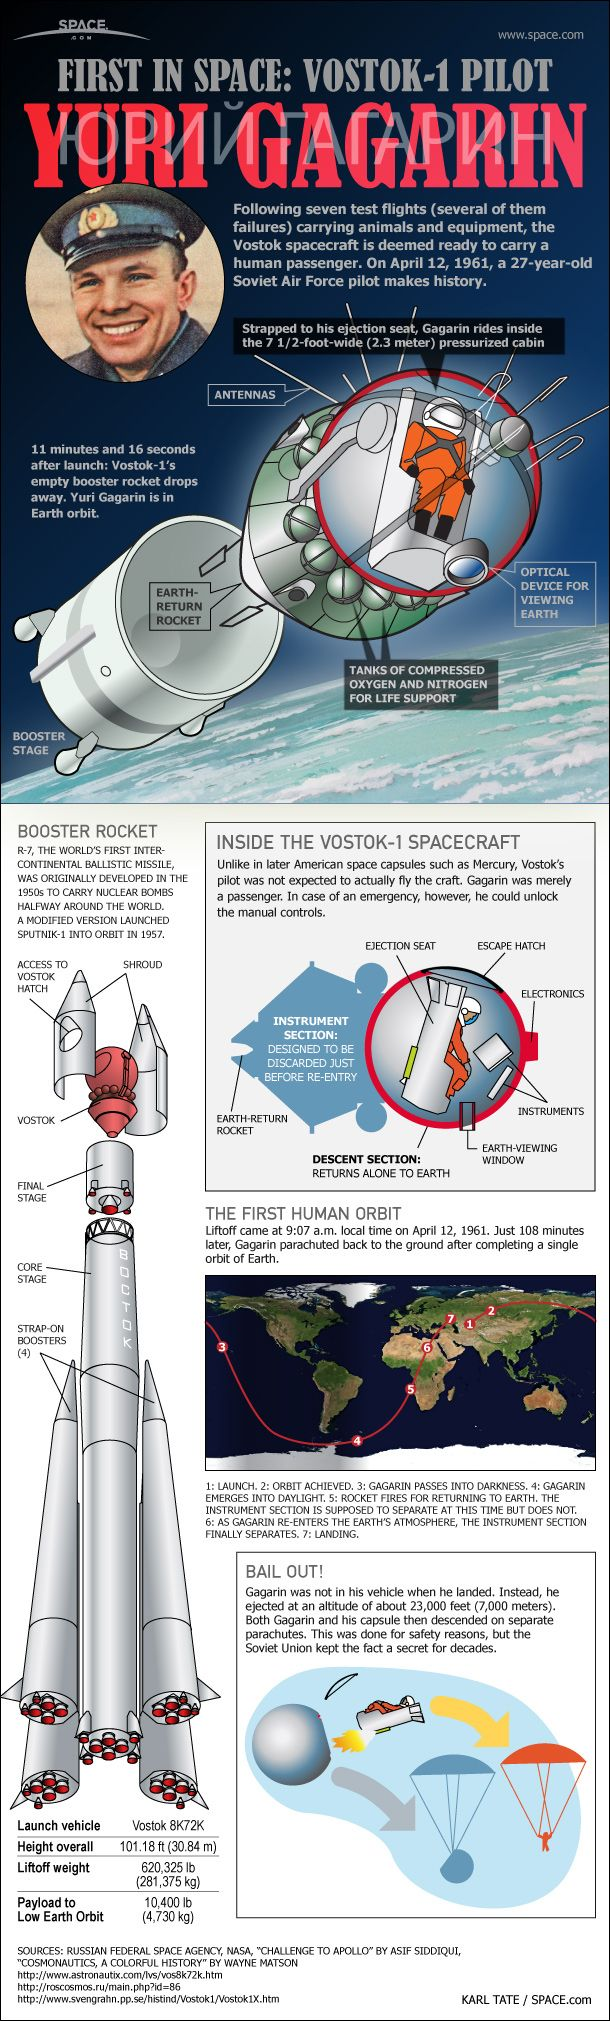 See how the first human spaceflight actually occurred when the Soviet Union launched cosmonaut Yuri Gagarin on Vostok 1 on April 12, 1961.